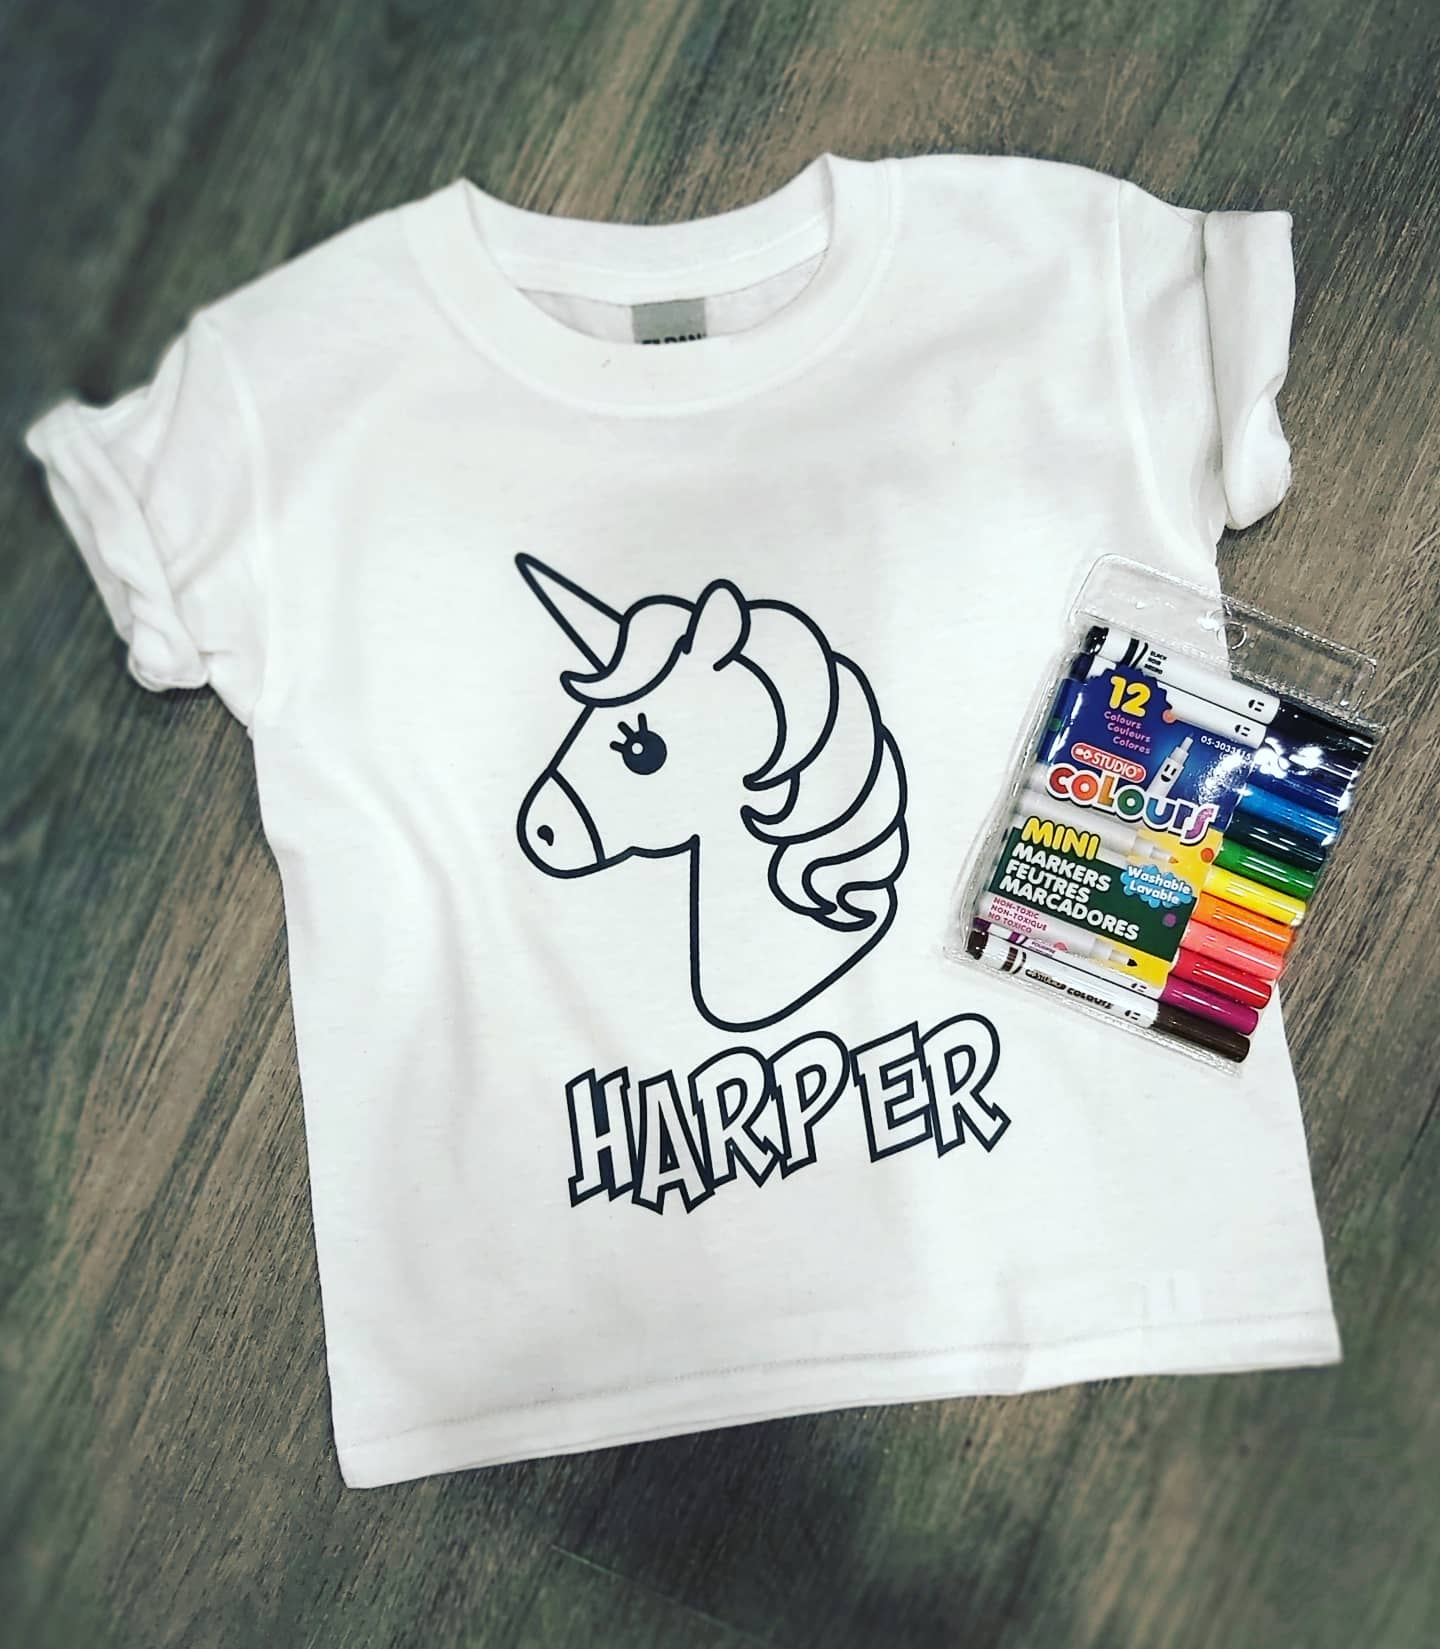 Colour me again kids tees